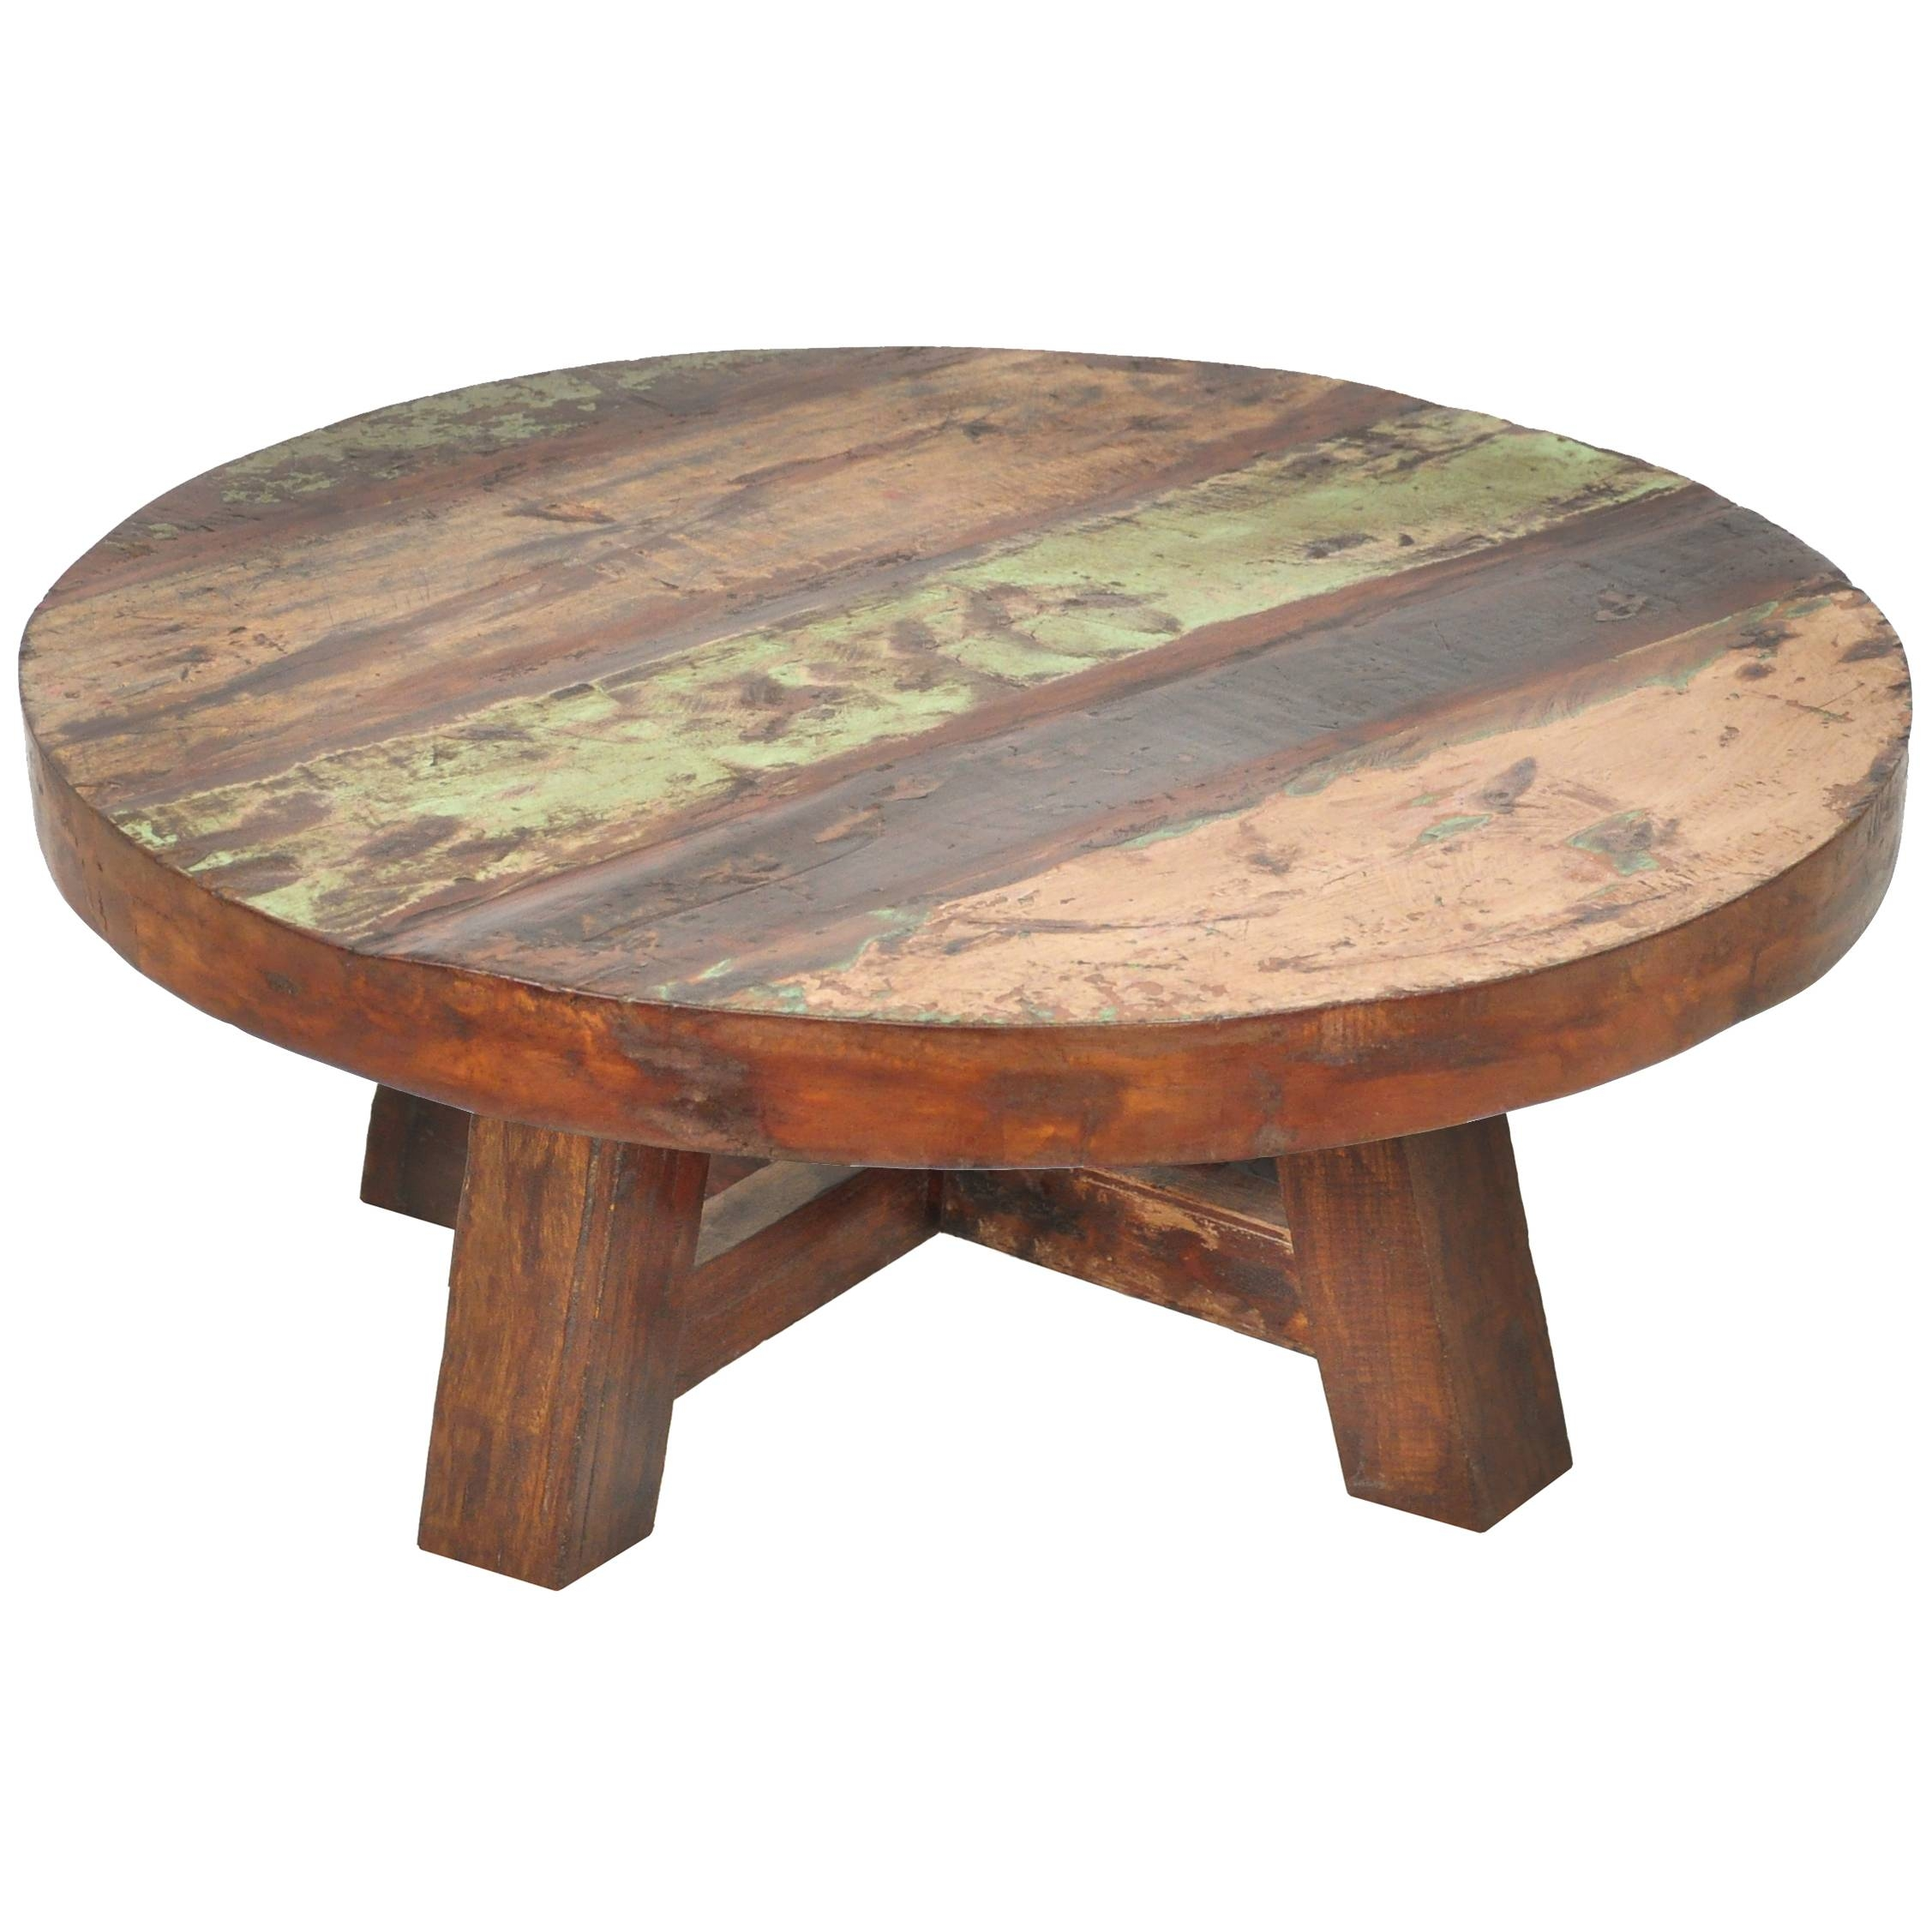 Coffee Table: Stylish Round Wooden Coffee Table Design Ideas Inside Small Circular Coffee Table (View 12 of 30)